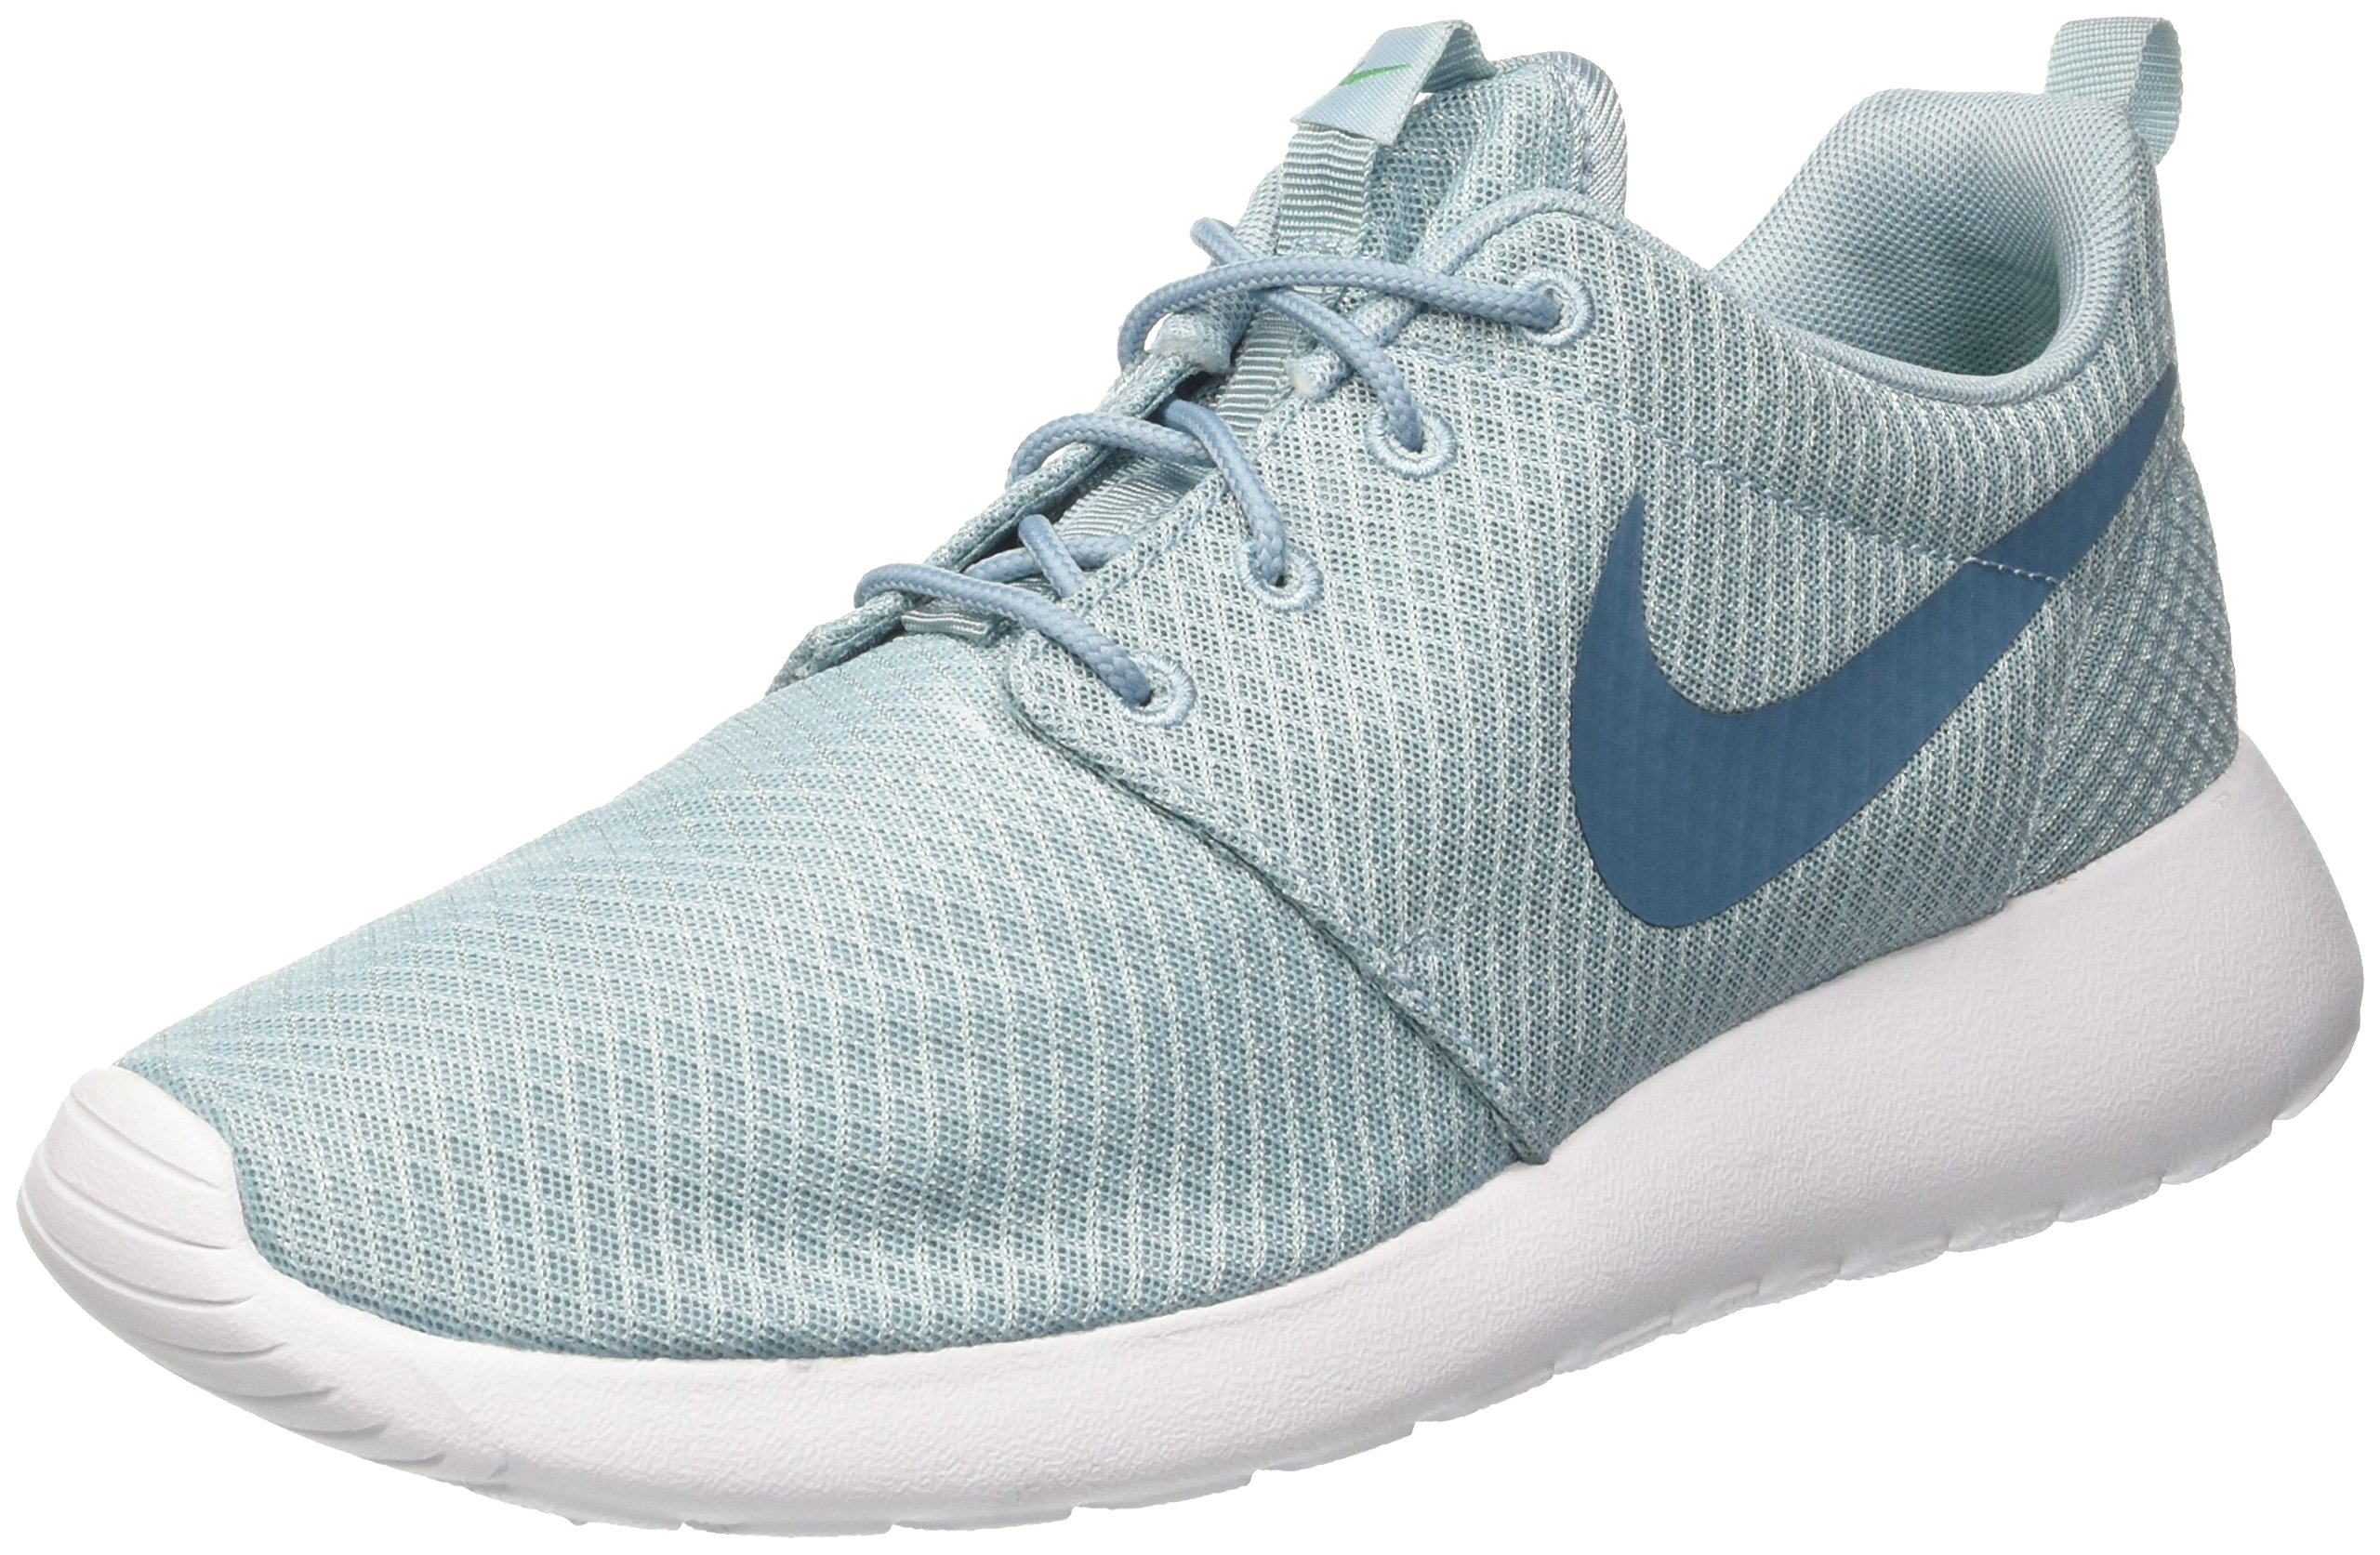 separation shoes b3662 089da Nike Womens Roshe One Low Top Lace Up, Khaki/White-Oatmeal-White, Size 9.5